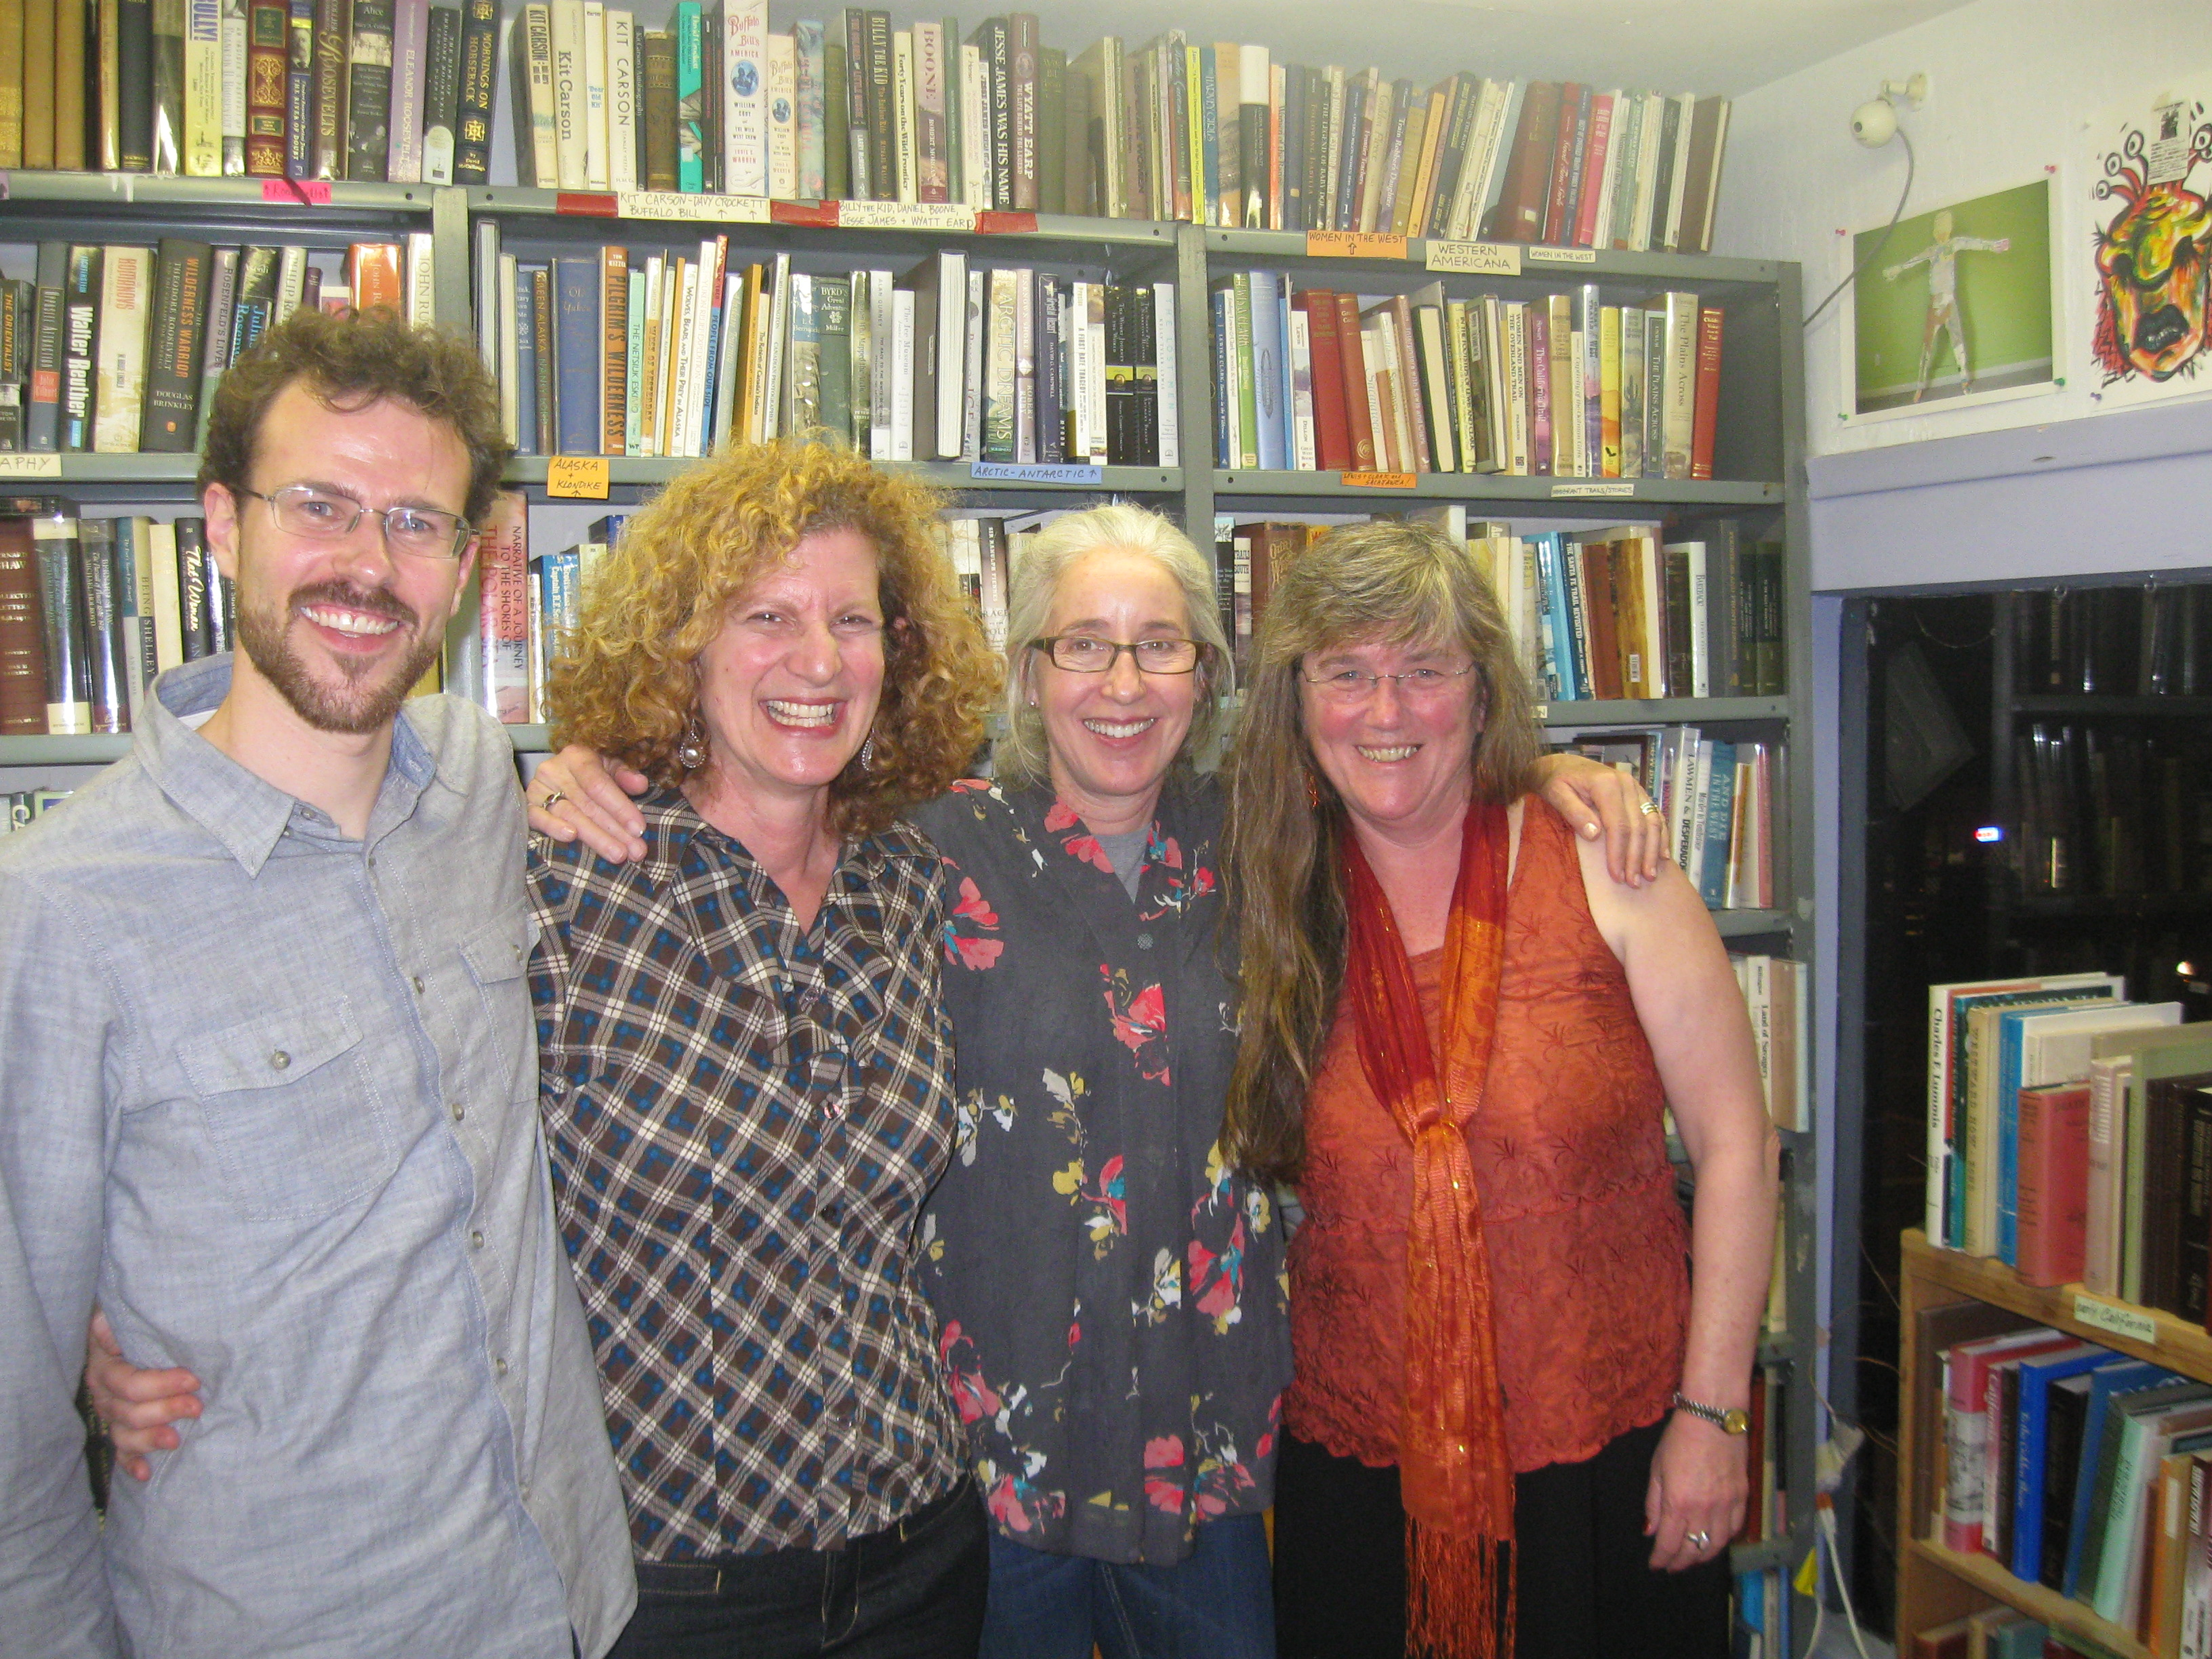 Great Overland Book Company poetry reading with fellow Writing Salon teachers Ben Jackson, Alison Luterman, and Julie Bruck. (April, 2014)